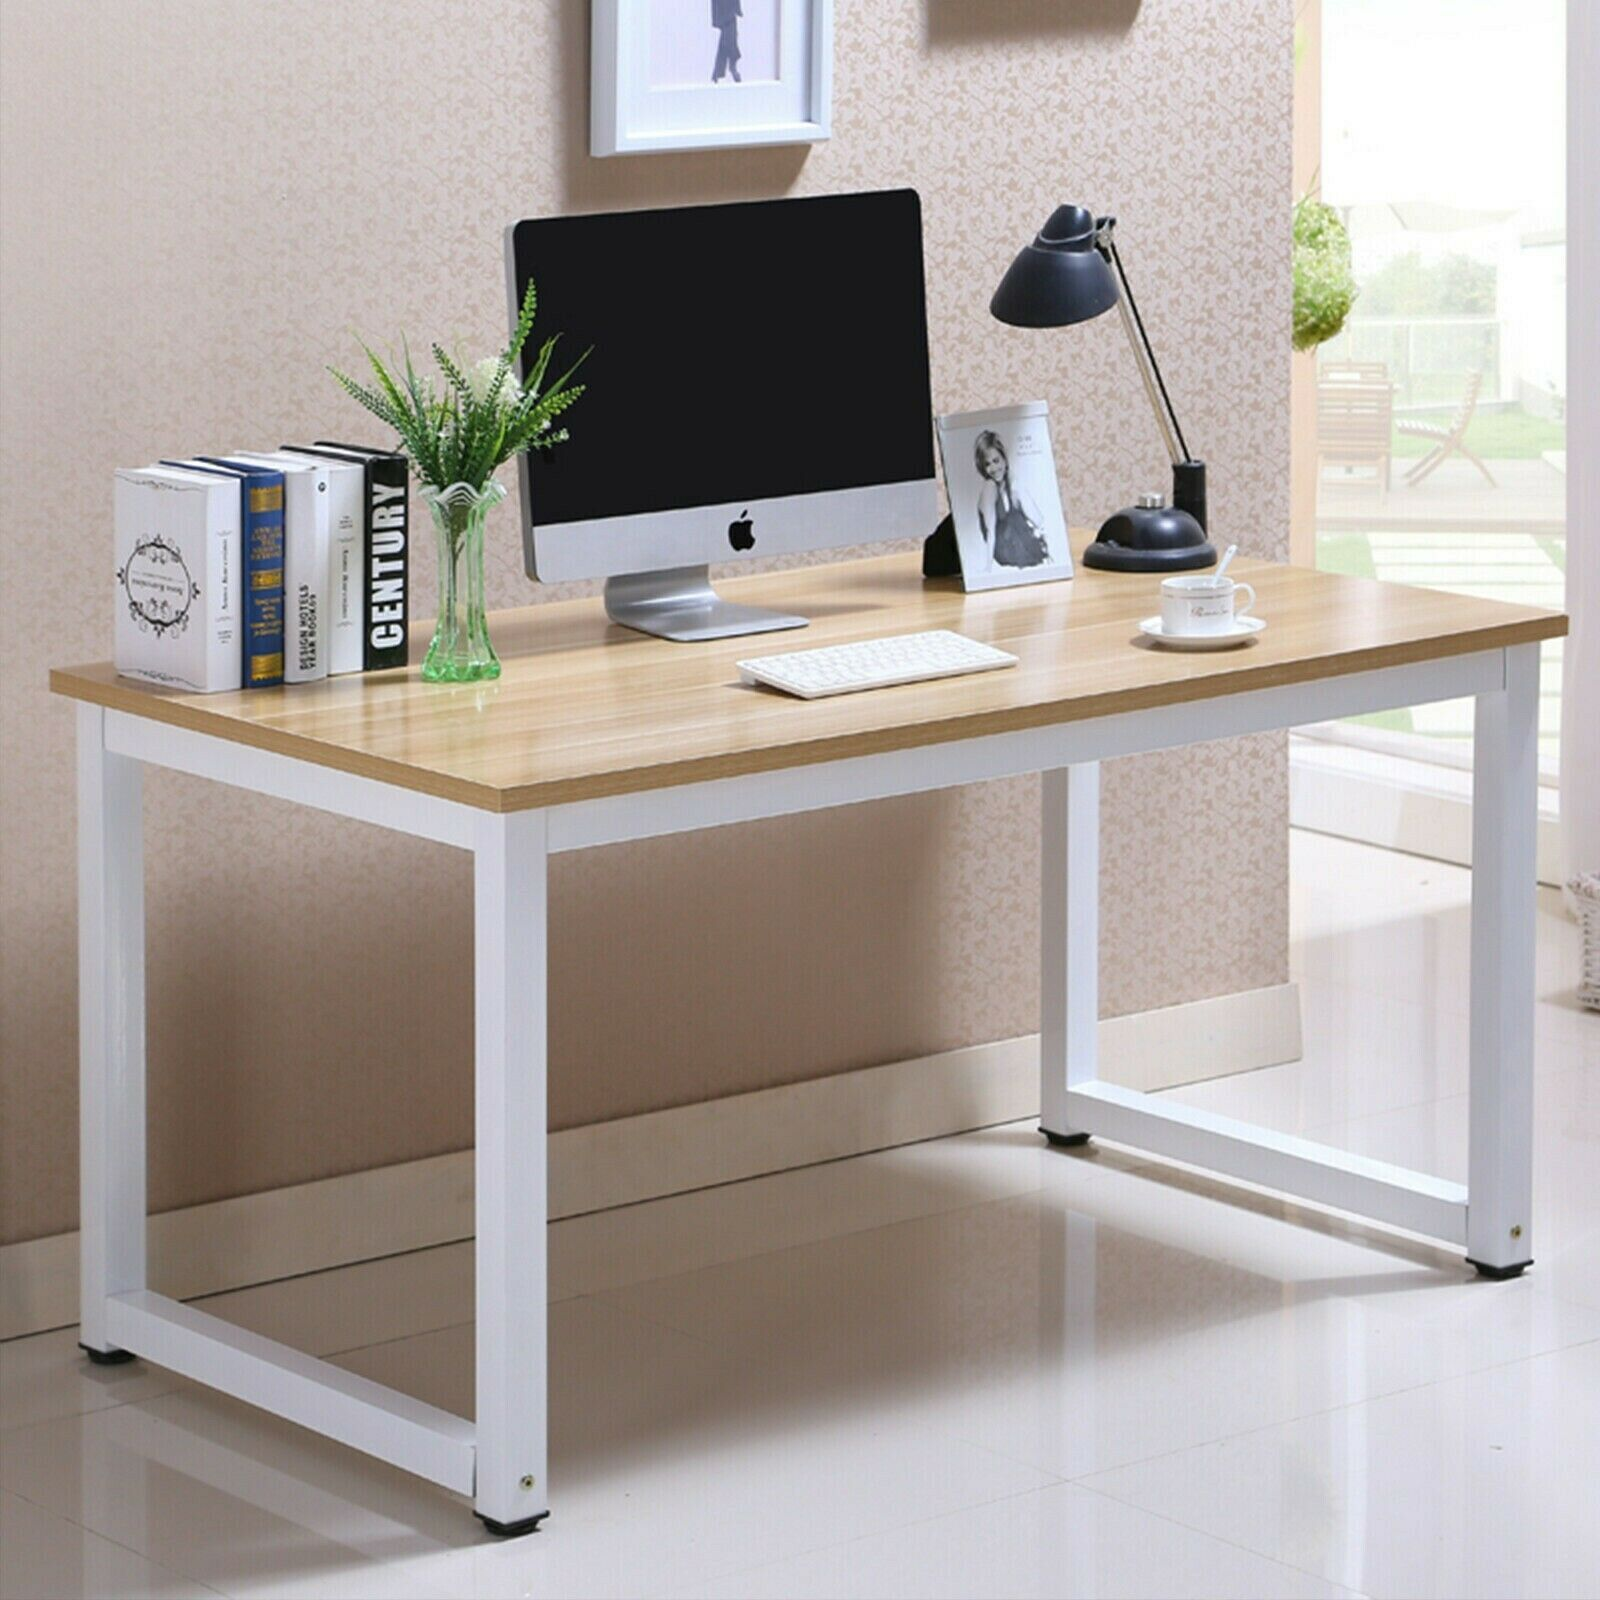 """55/"""" Wood Computer Desk PC Laptop Table Reading Workstation Home Office Furniture"""